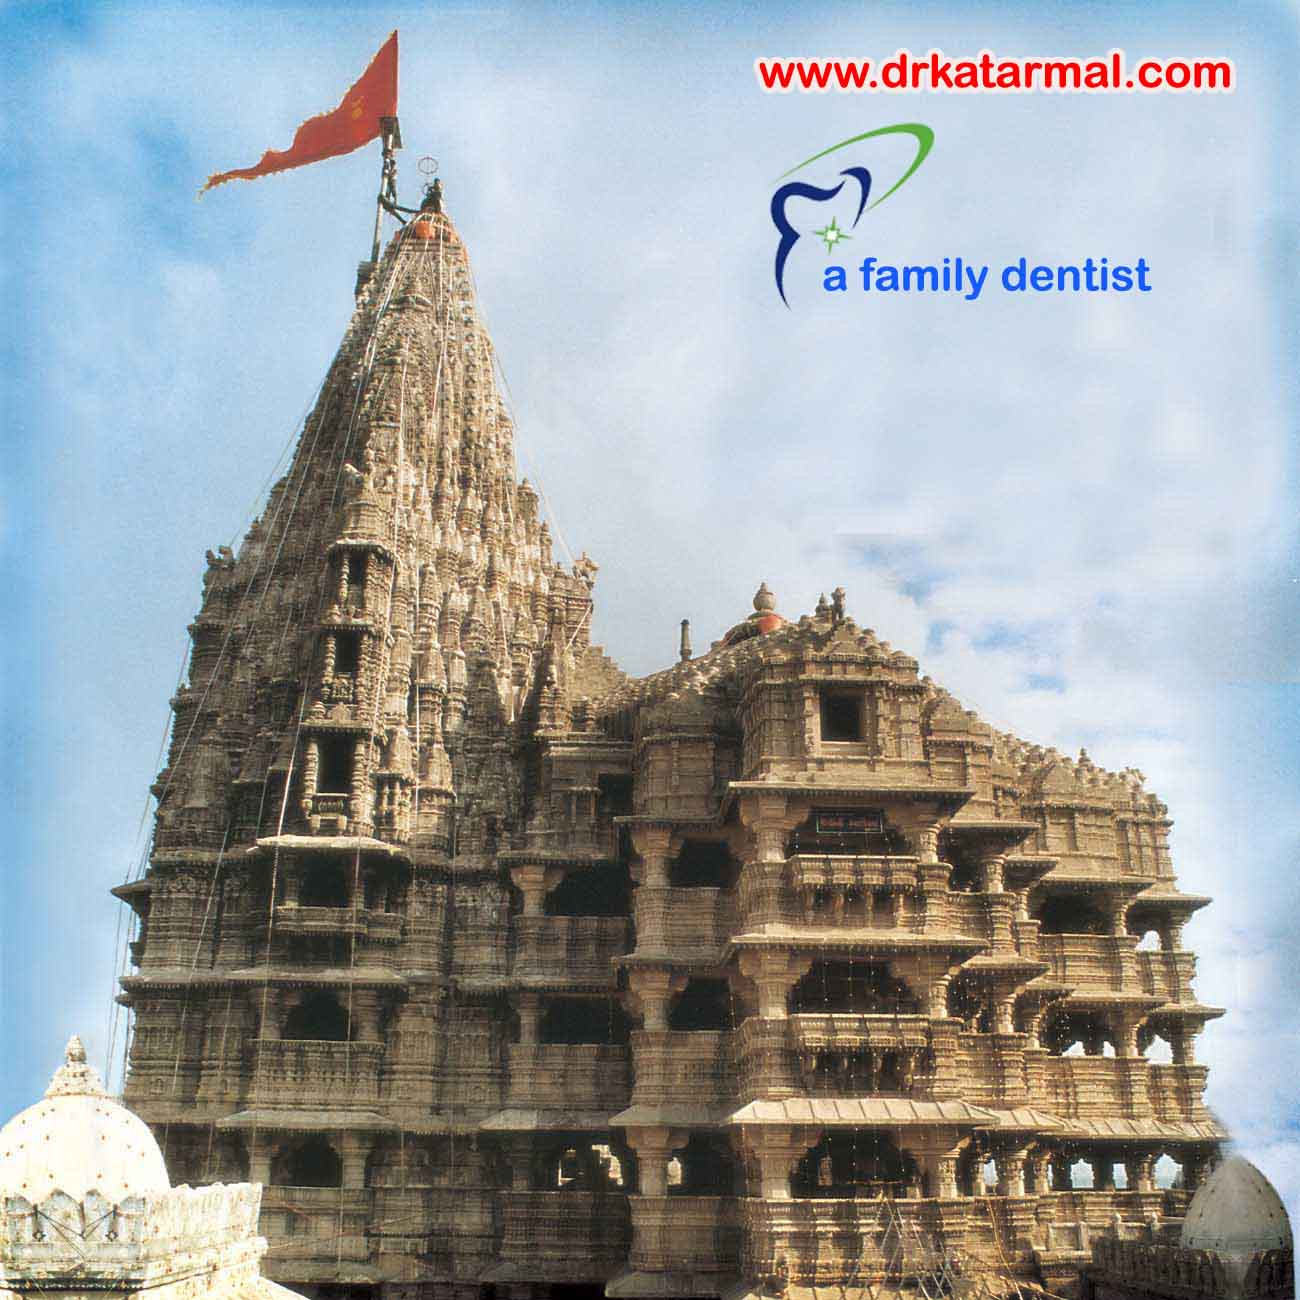 dwarkadhish temple is famous tourist point of jamnagar, mandir of krishna